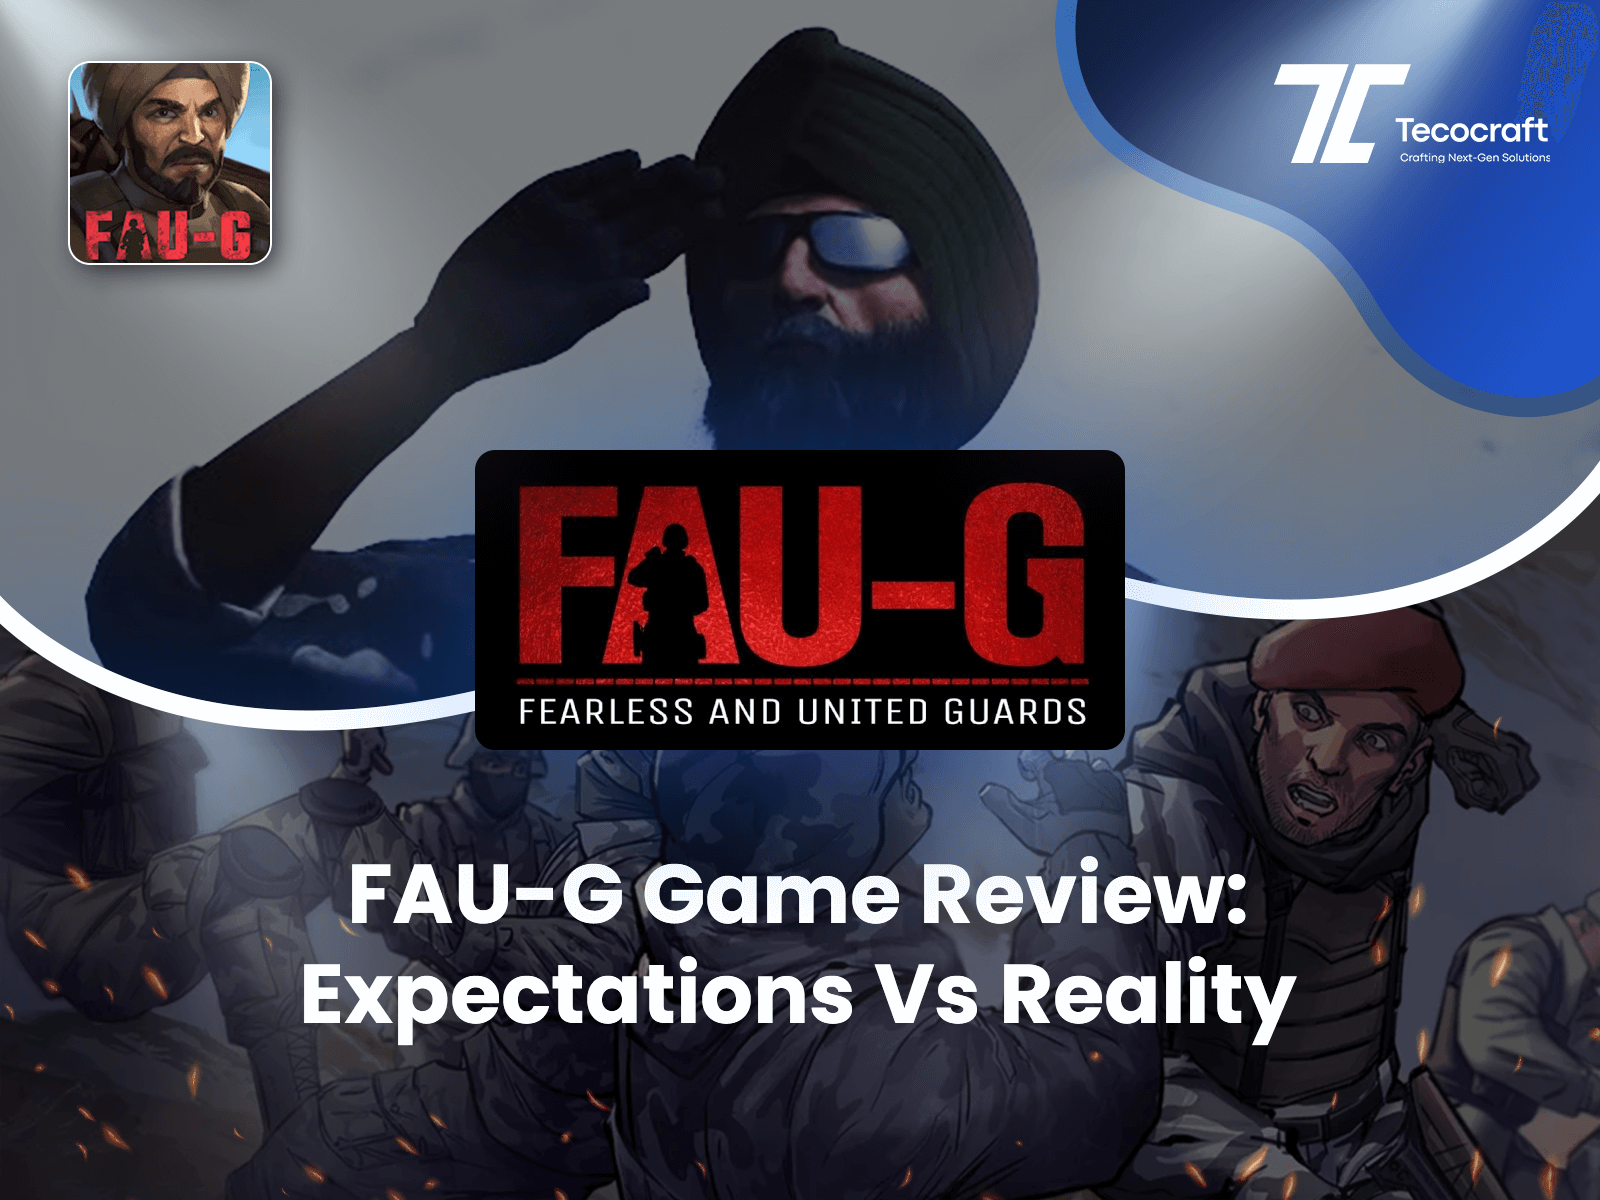 Fau-G Game Review